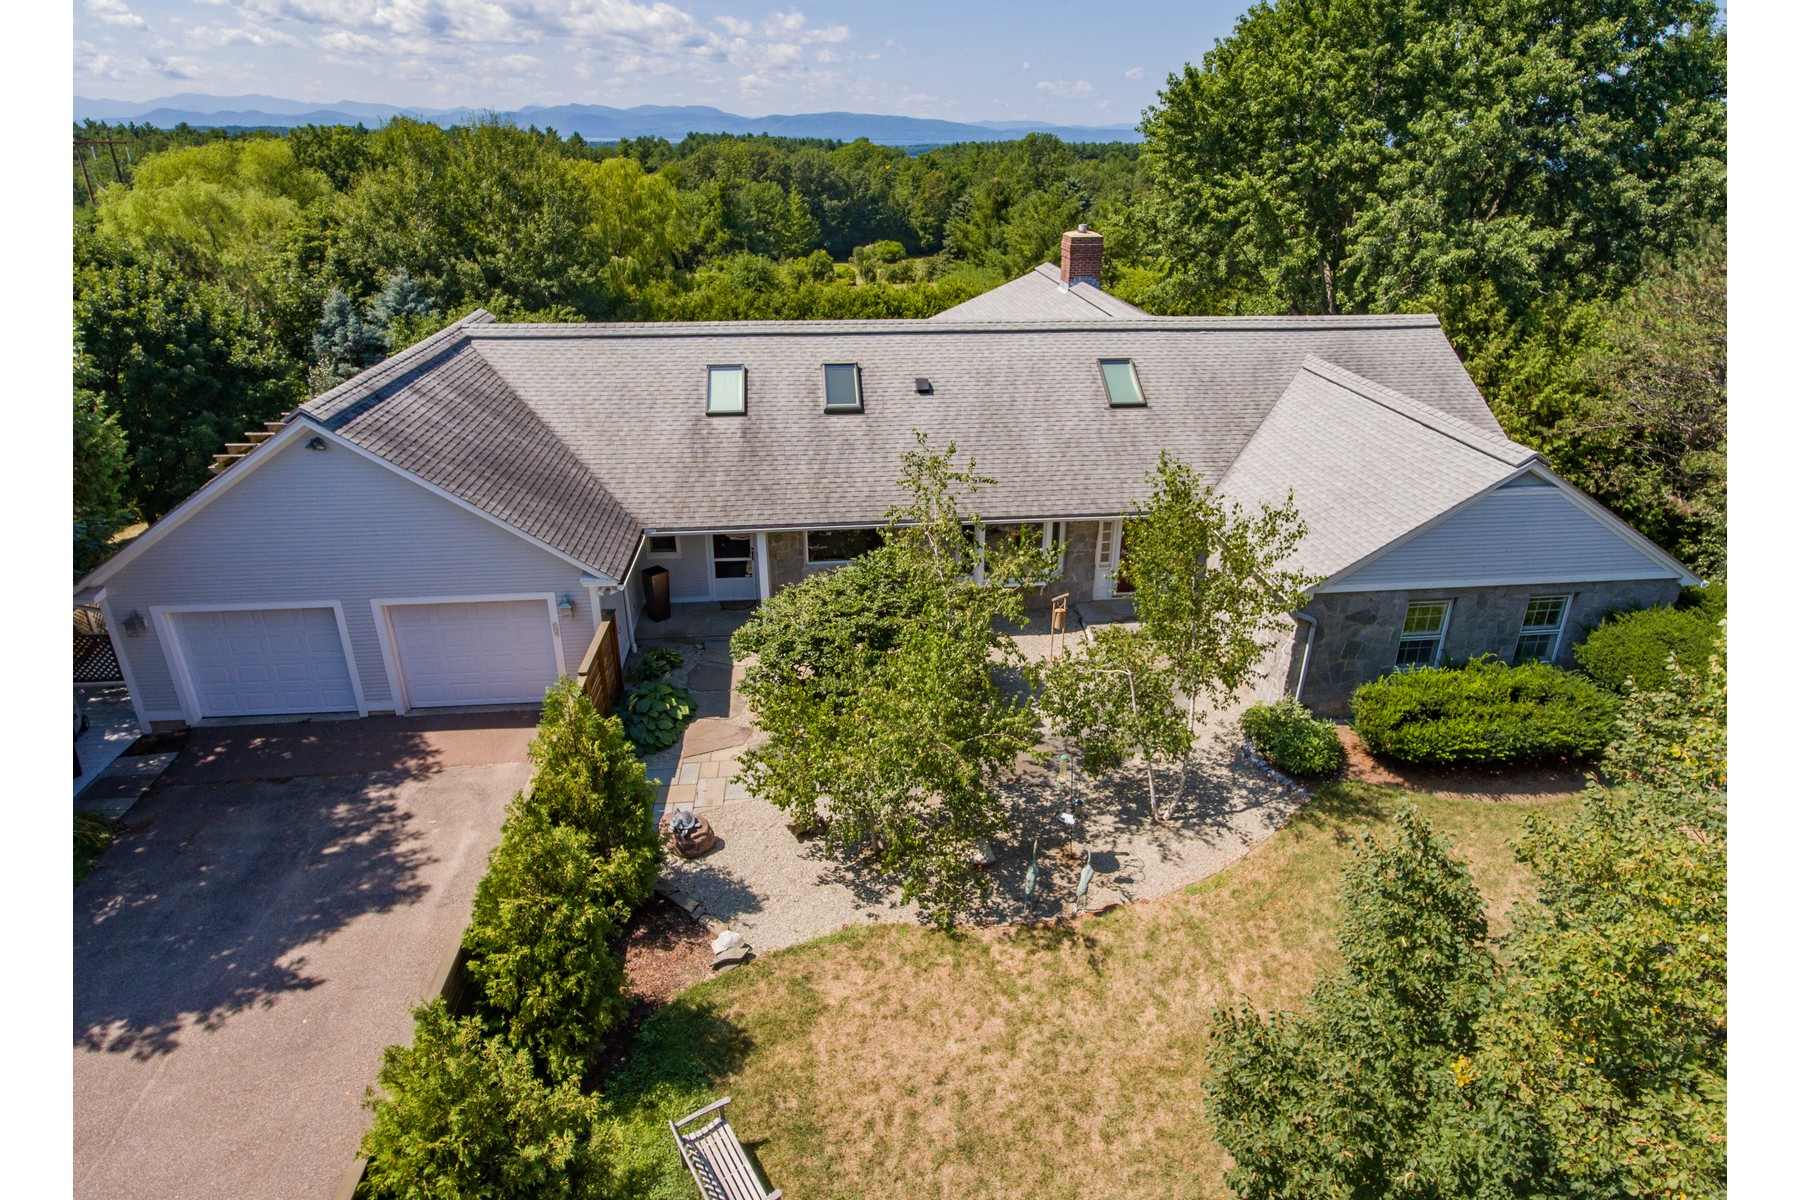 Single Family Home for Sale at 1971 Spear Street, South Burlington 1971 Spear St South Burlington, Vermont 05403 United States